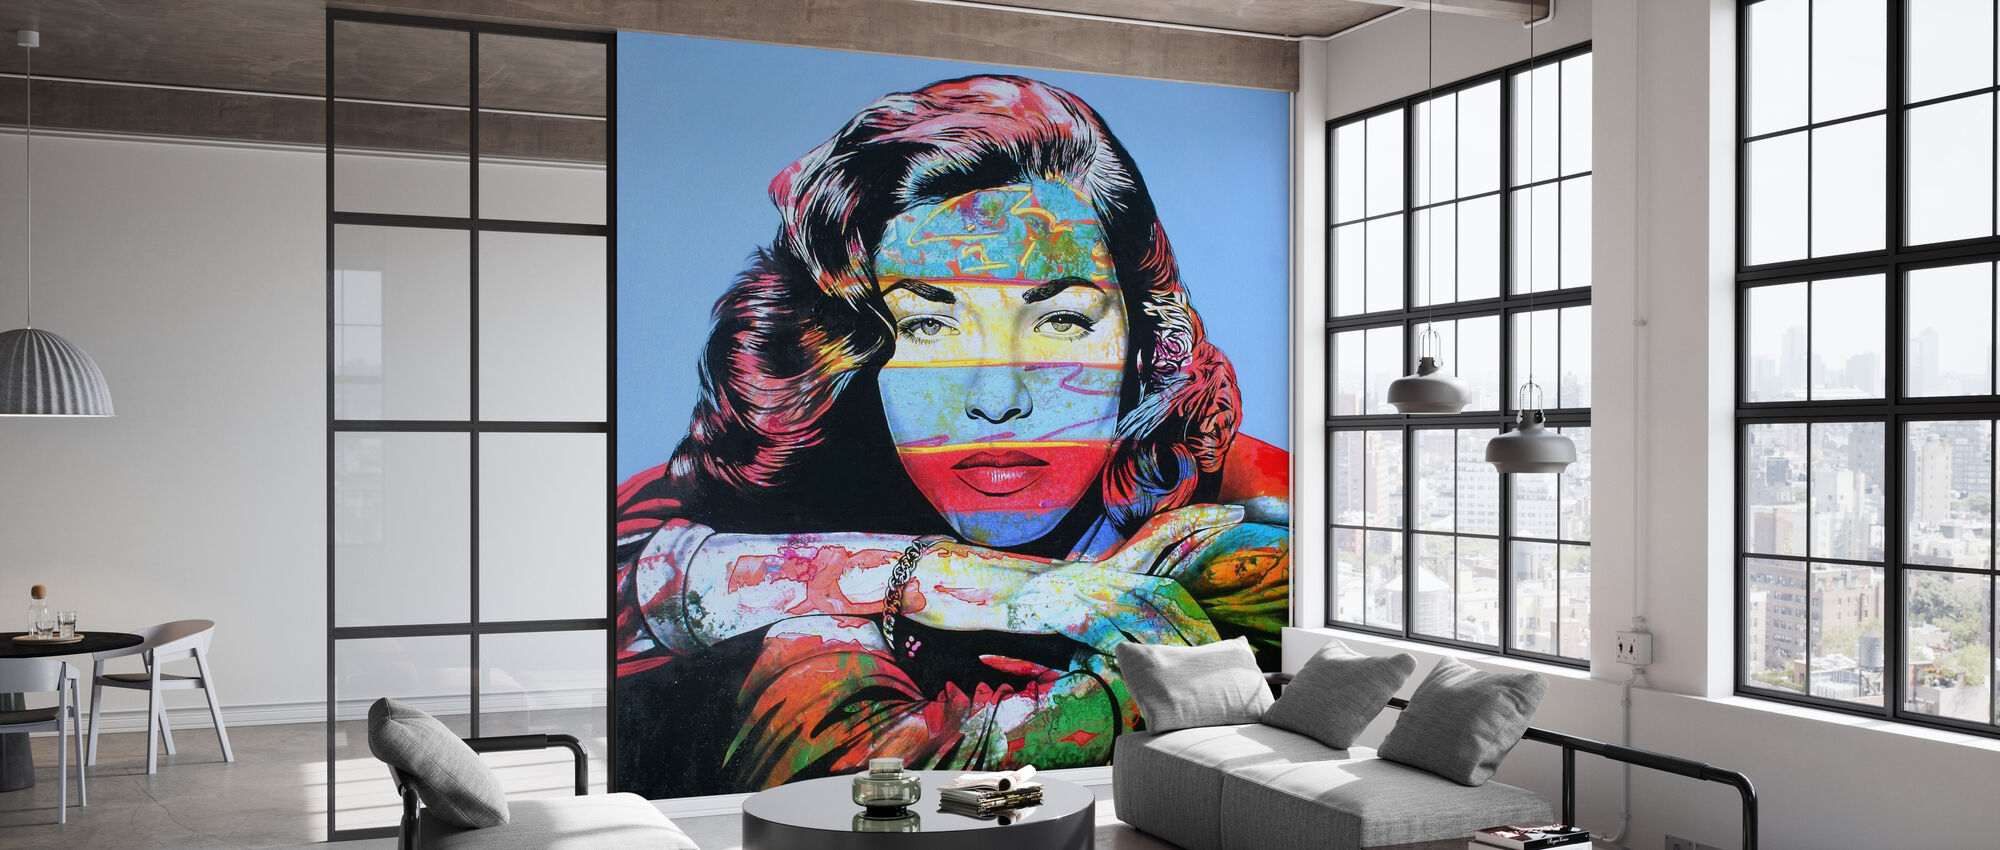 Just Like Bacall - Wallpaper - Office